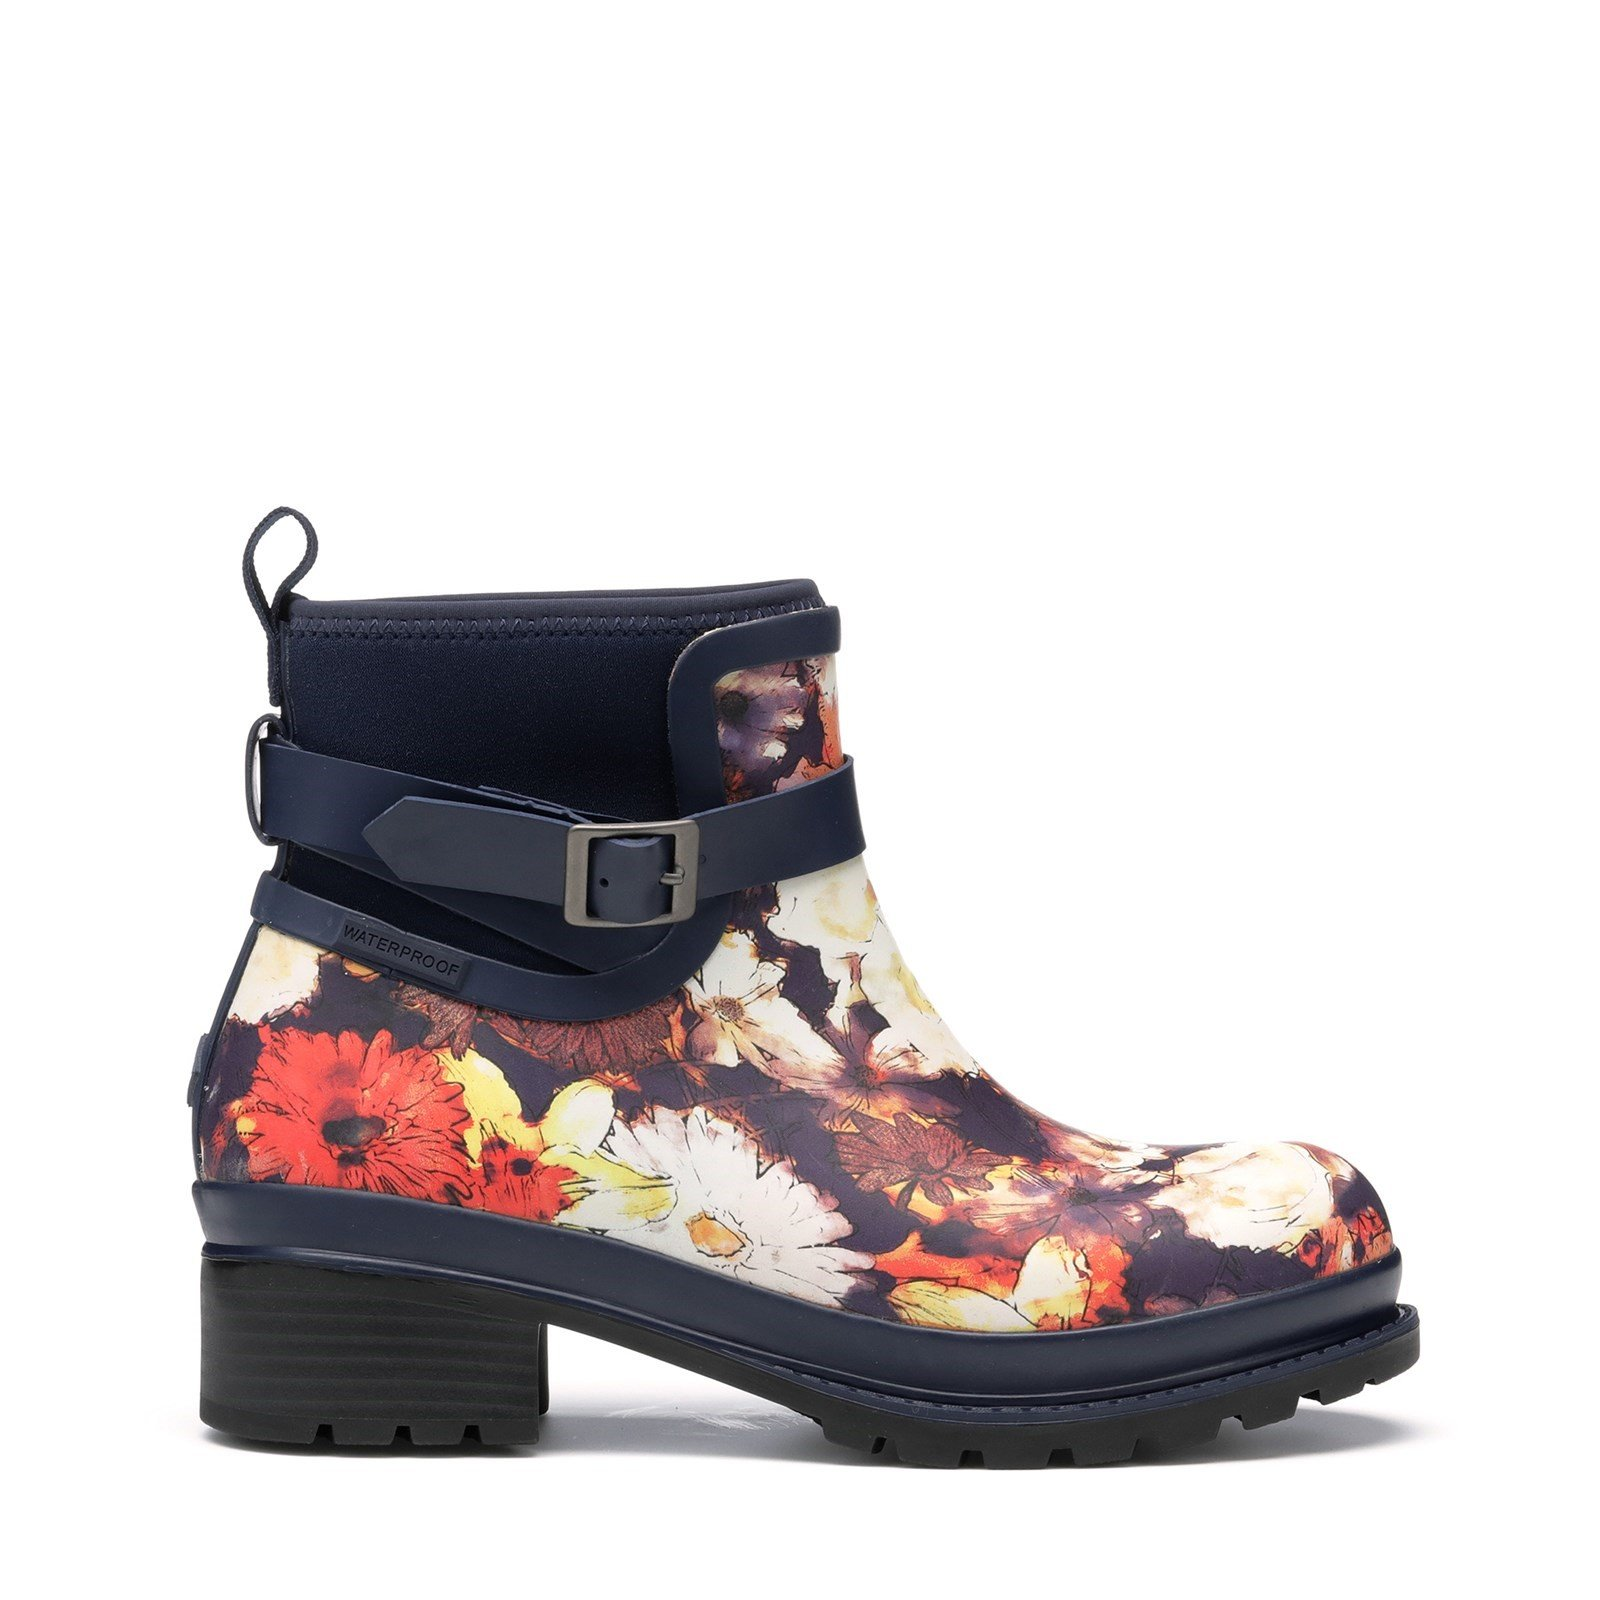 Muck Boots Women's Liberty Rubber Ankle Boots Various Colours 31816 - Navy Floral Print 9